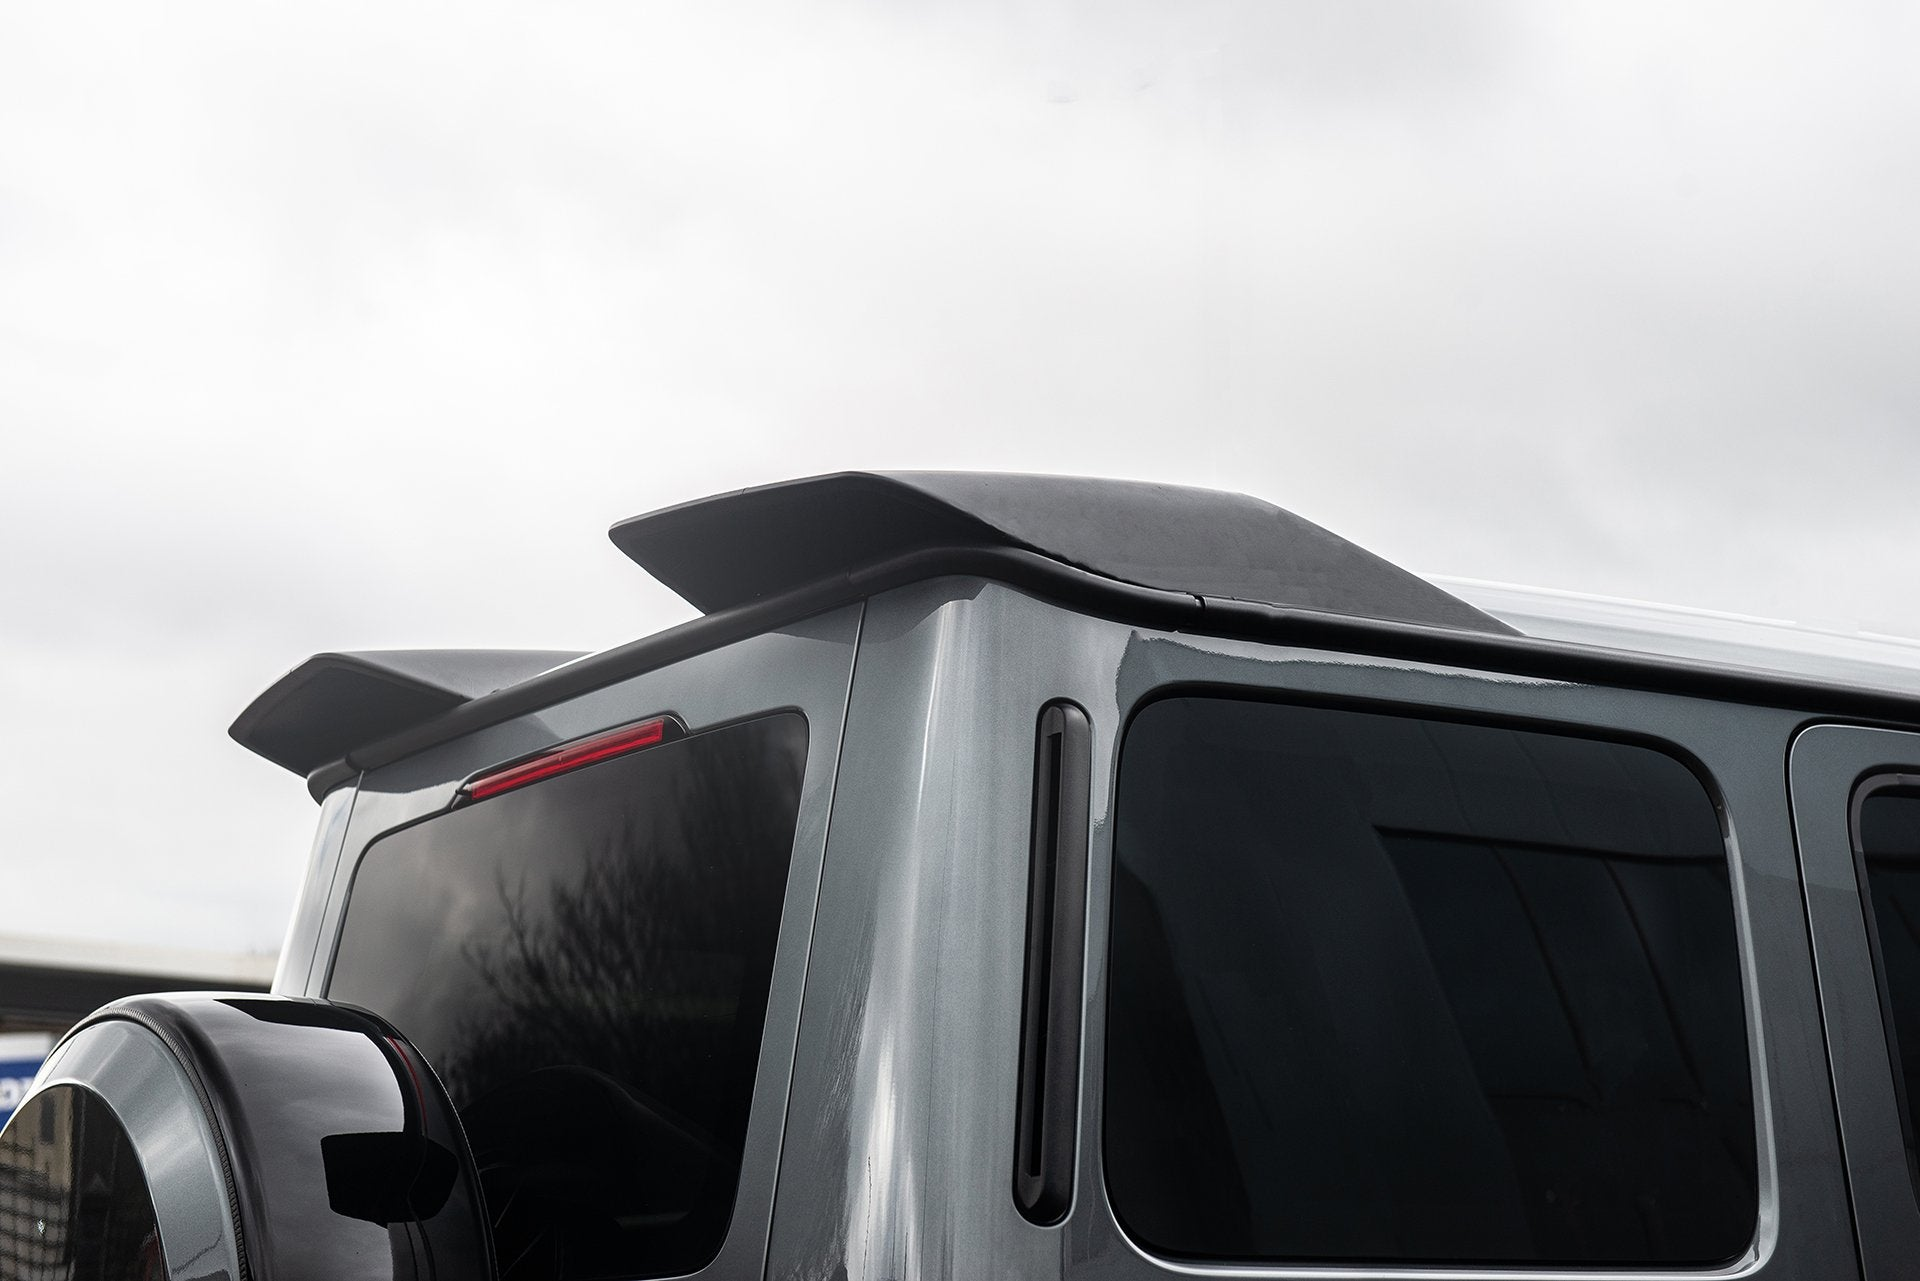 MERCEDES G-WAGON (2018-PRESENT) G63 AMG EXPOSED CARBON REAR ROOF WING